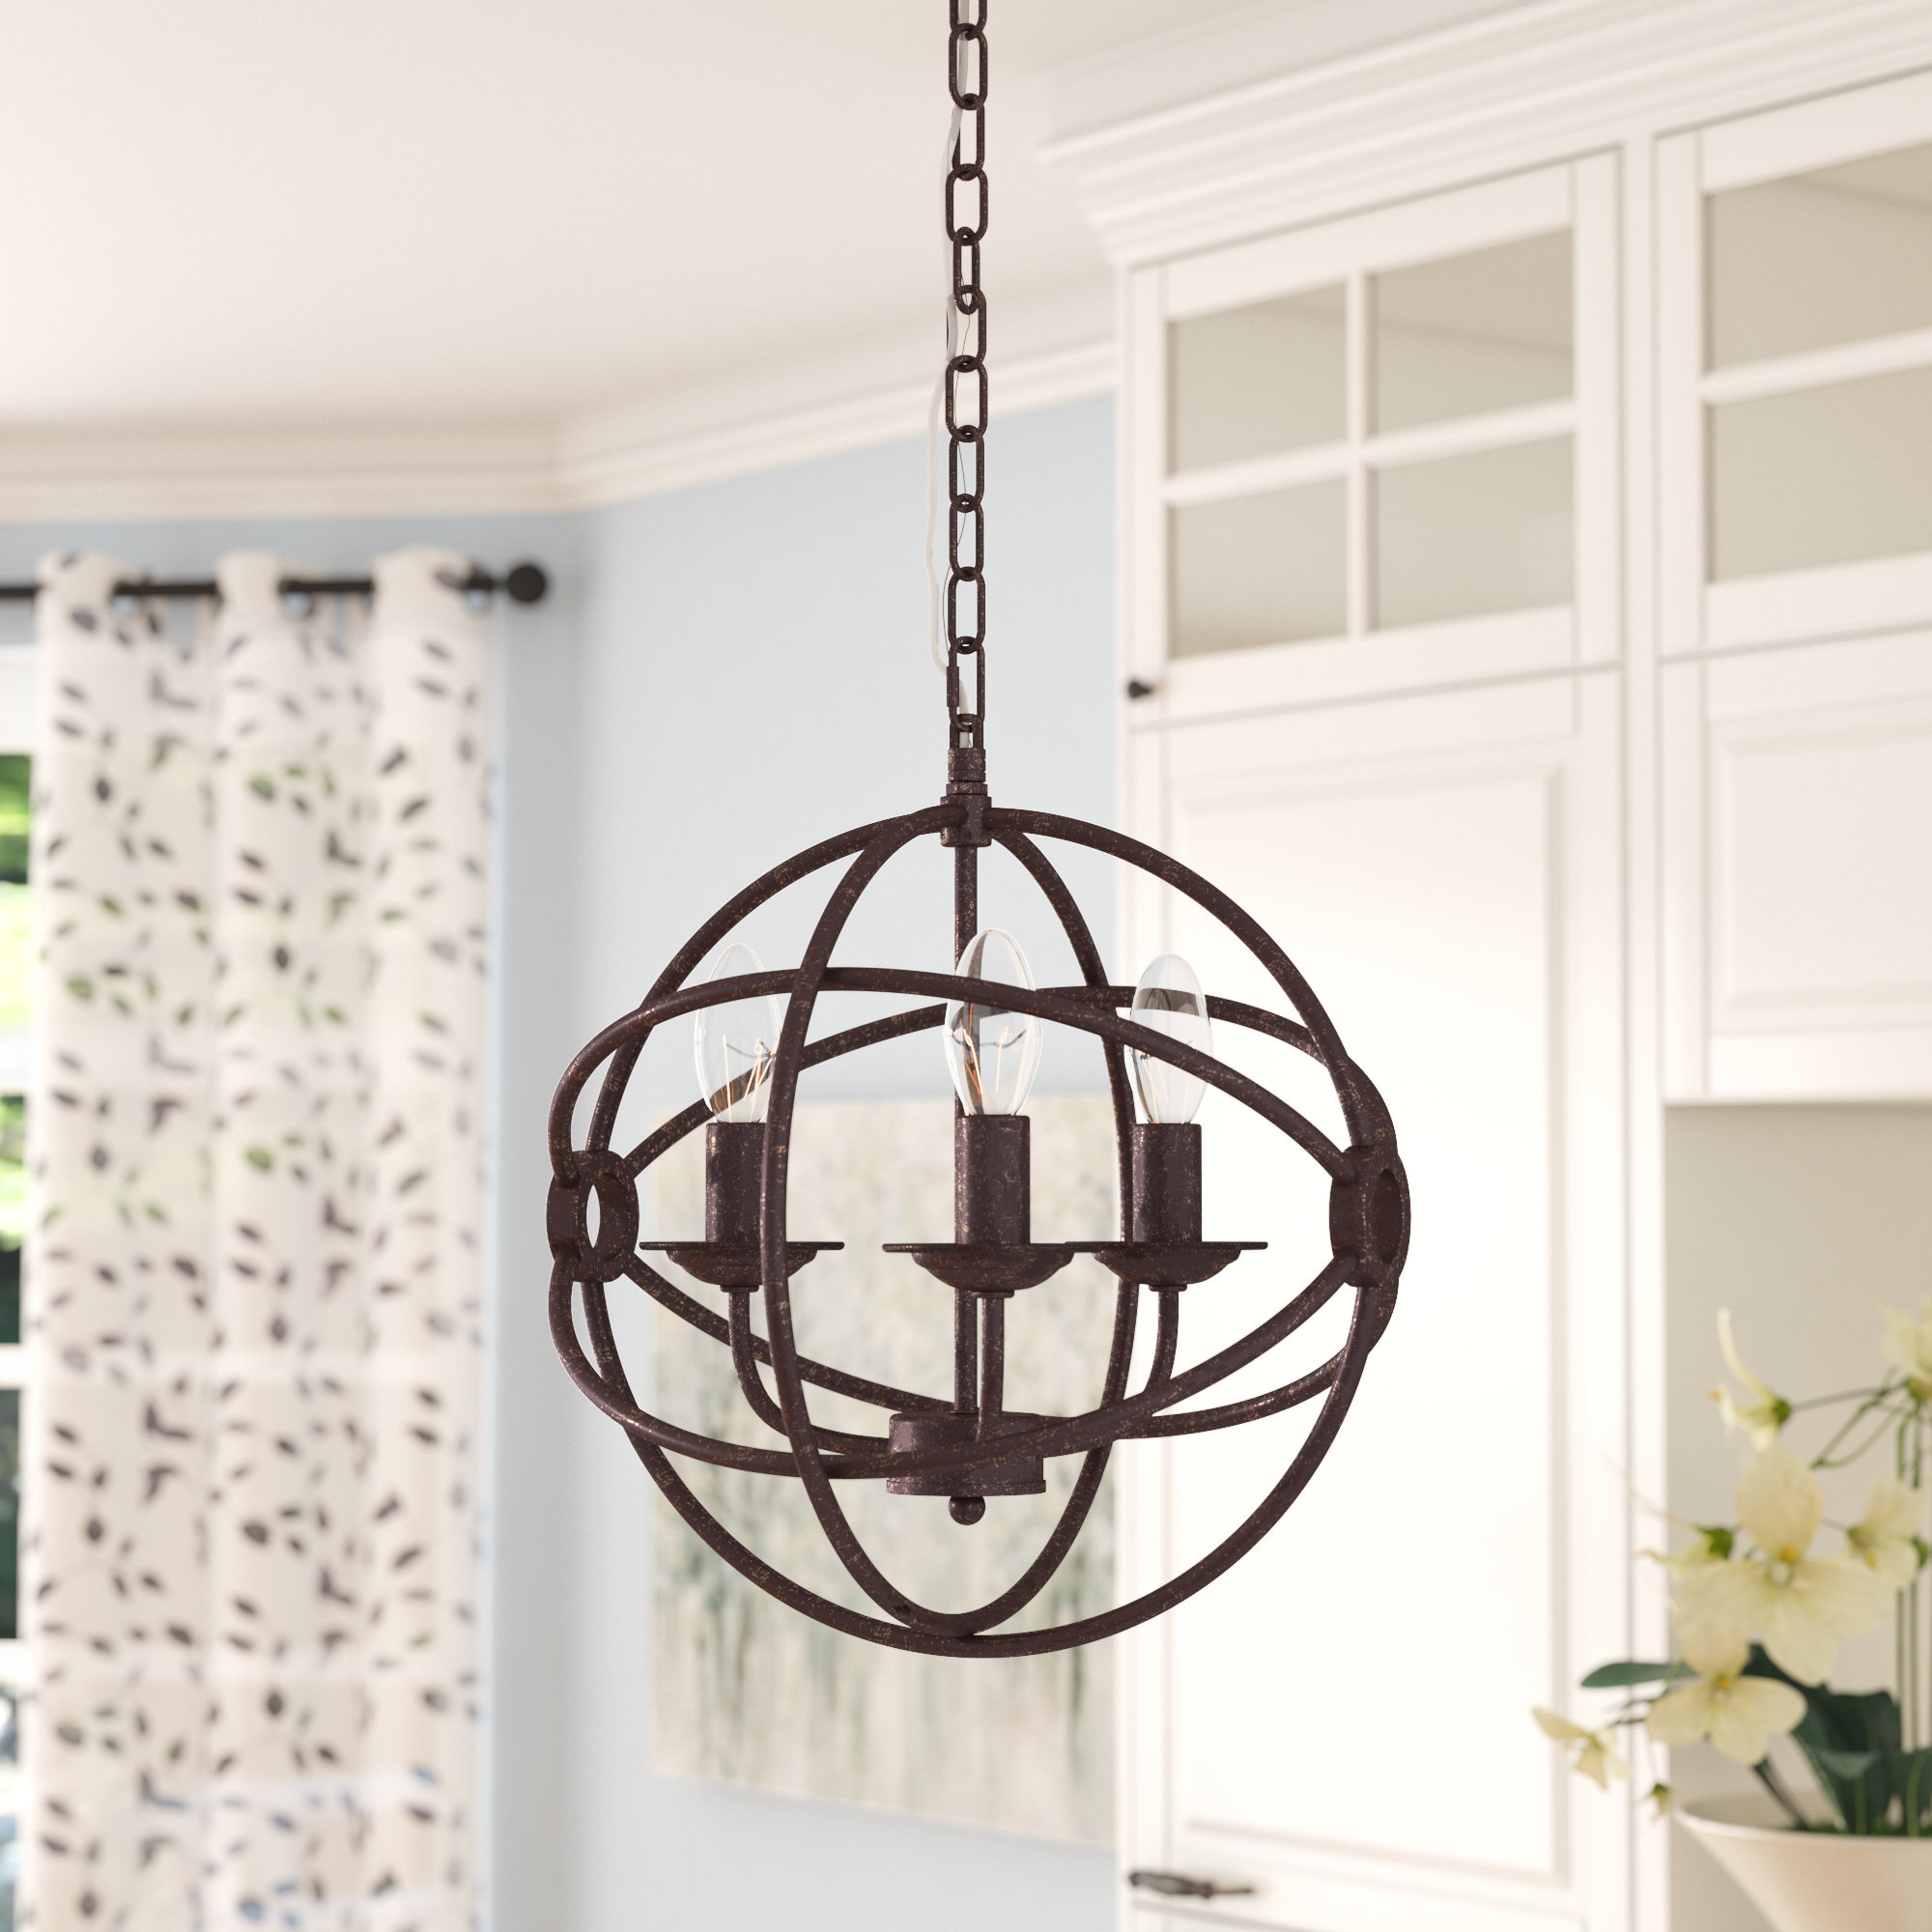 Ricciardo 4 Light Globe Chandeliers With Regard To Most Recently Released Multi Globe Chandelier (View 16 of 20)